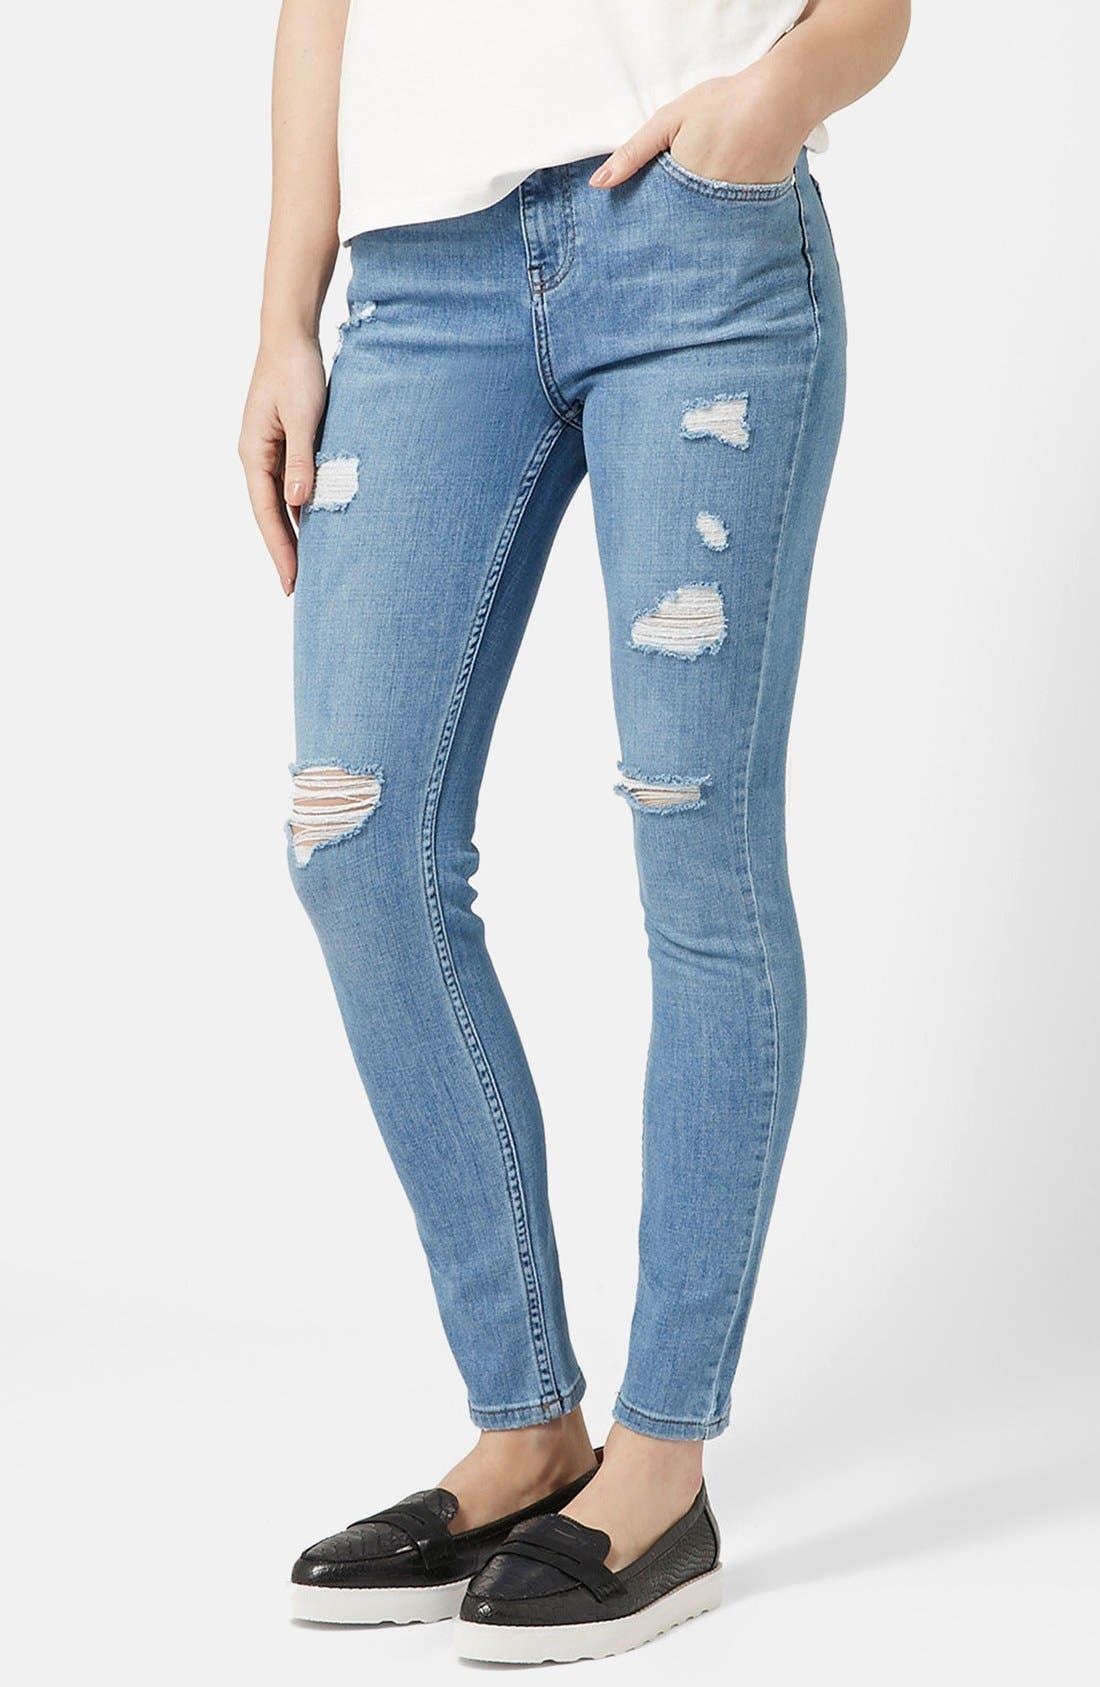 Alternate Image 1 Selected - Topshop Moto High Rise Ripped Jeans (Light Denim) (Short)